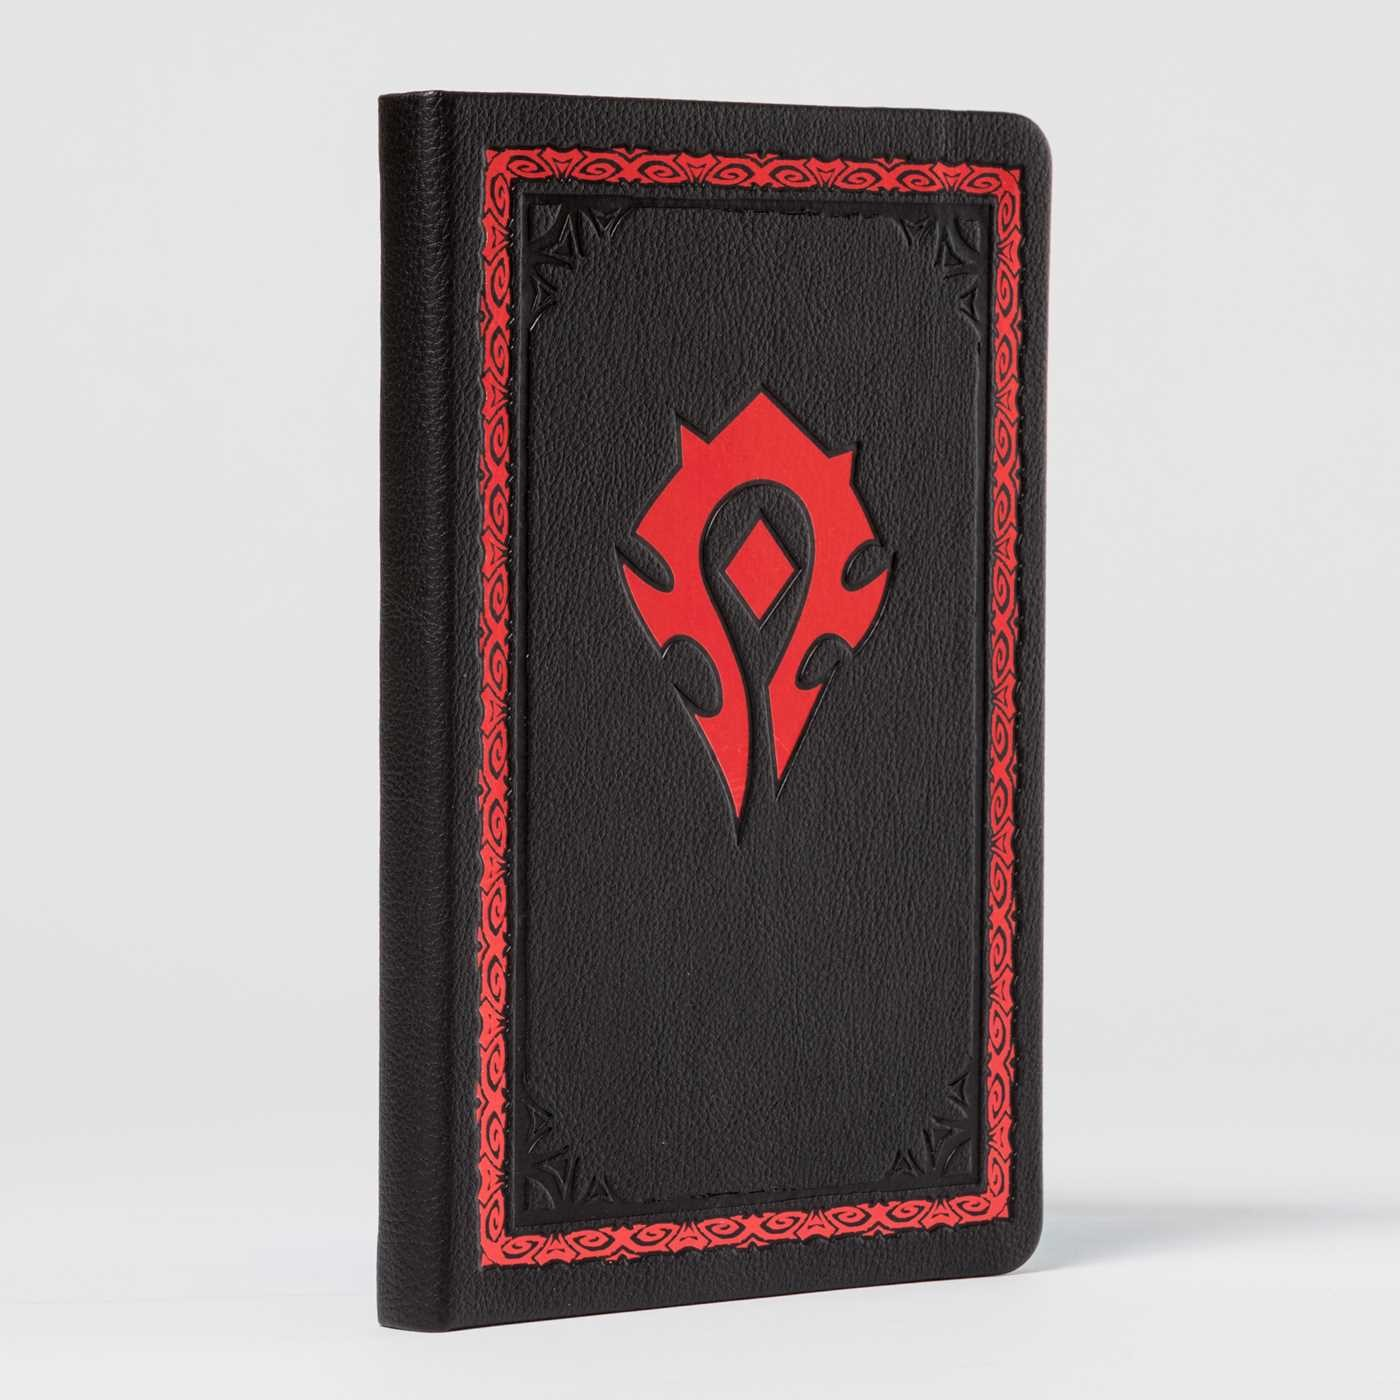 World of warcraft horde hardcover ruled journal 9781683833260.in06